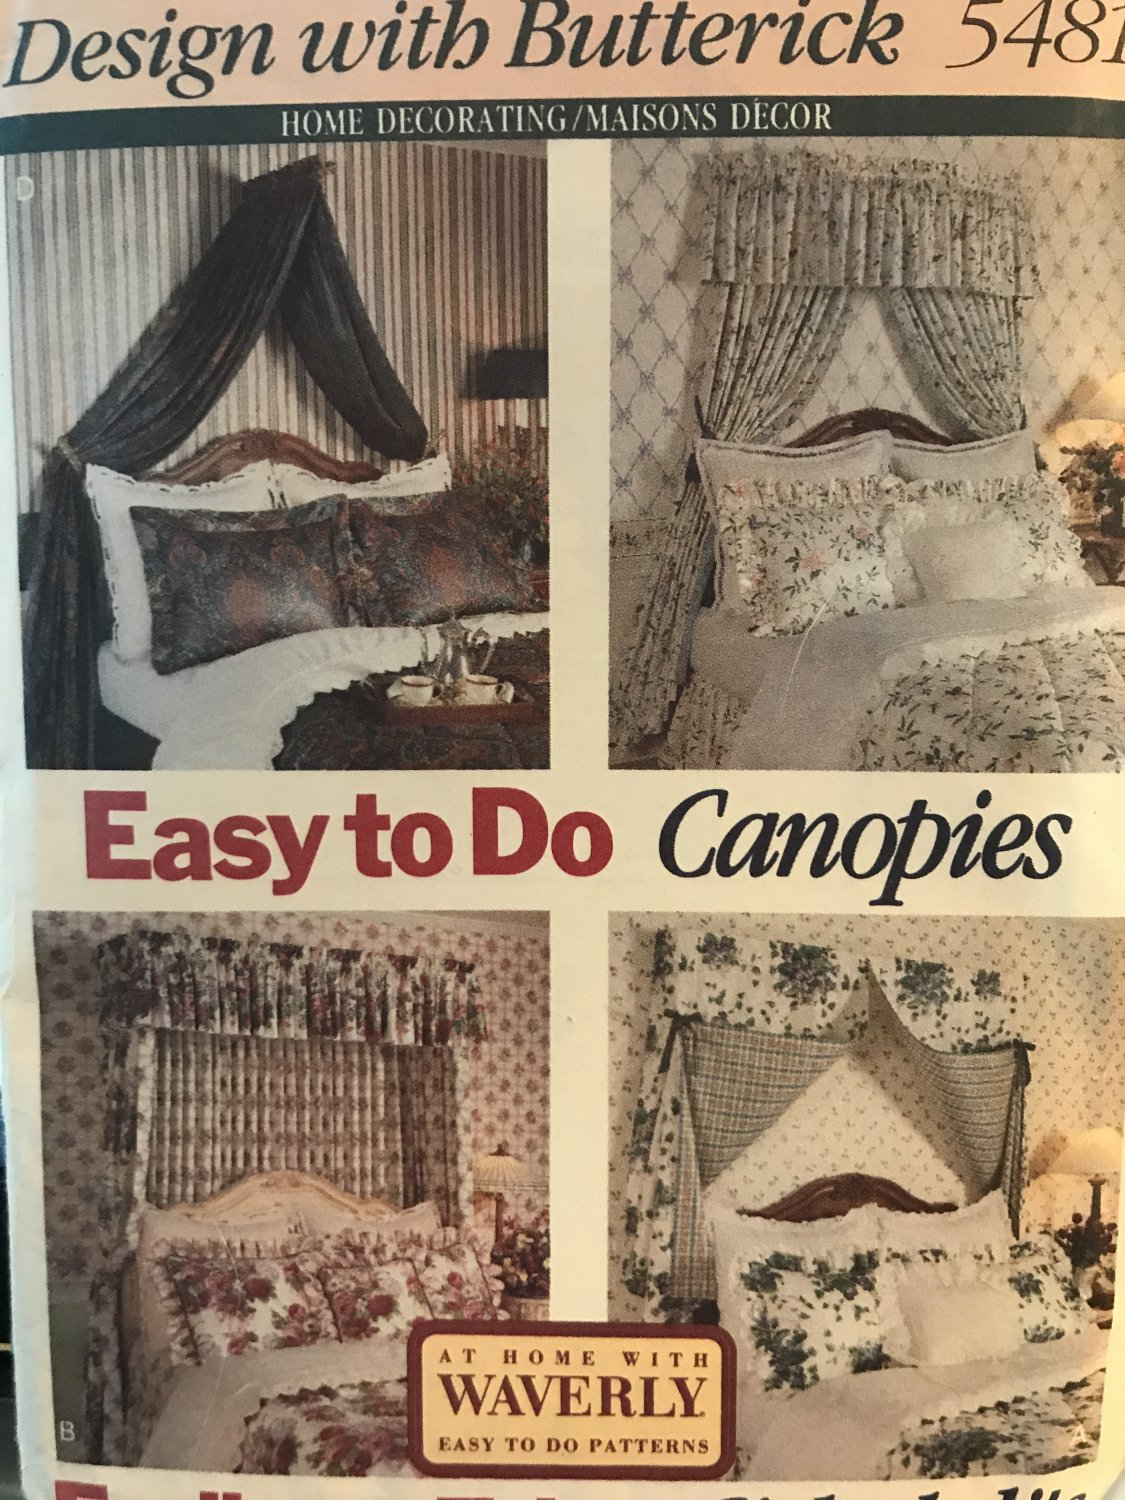 Butterick Sewing Pattern 5481 Easy to do Canopies for over a bed